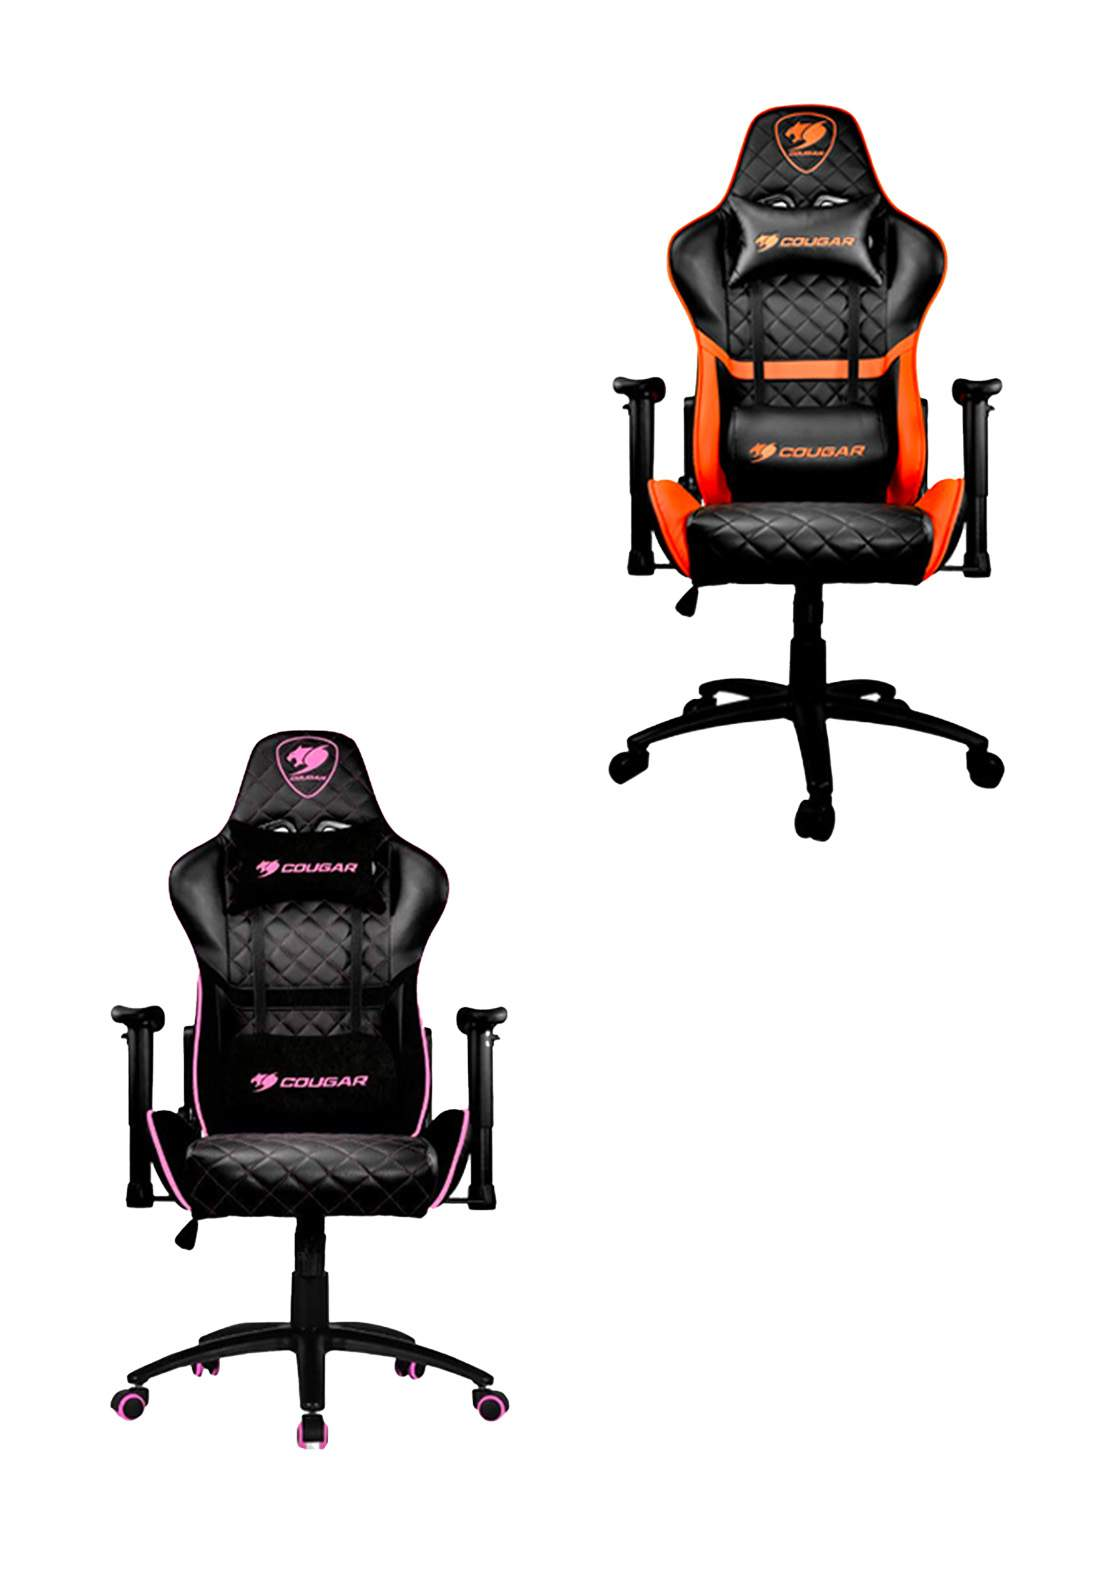 Cougar Armor One Gaming Chair كرسي ألعاب